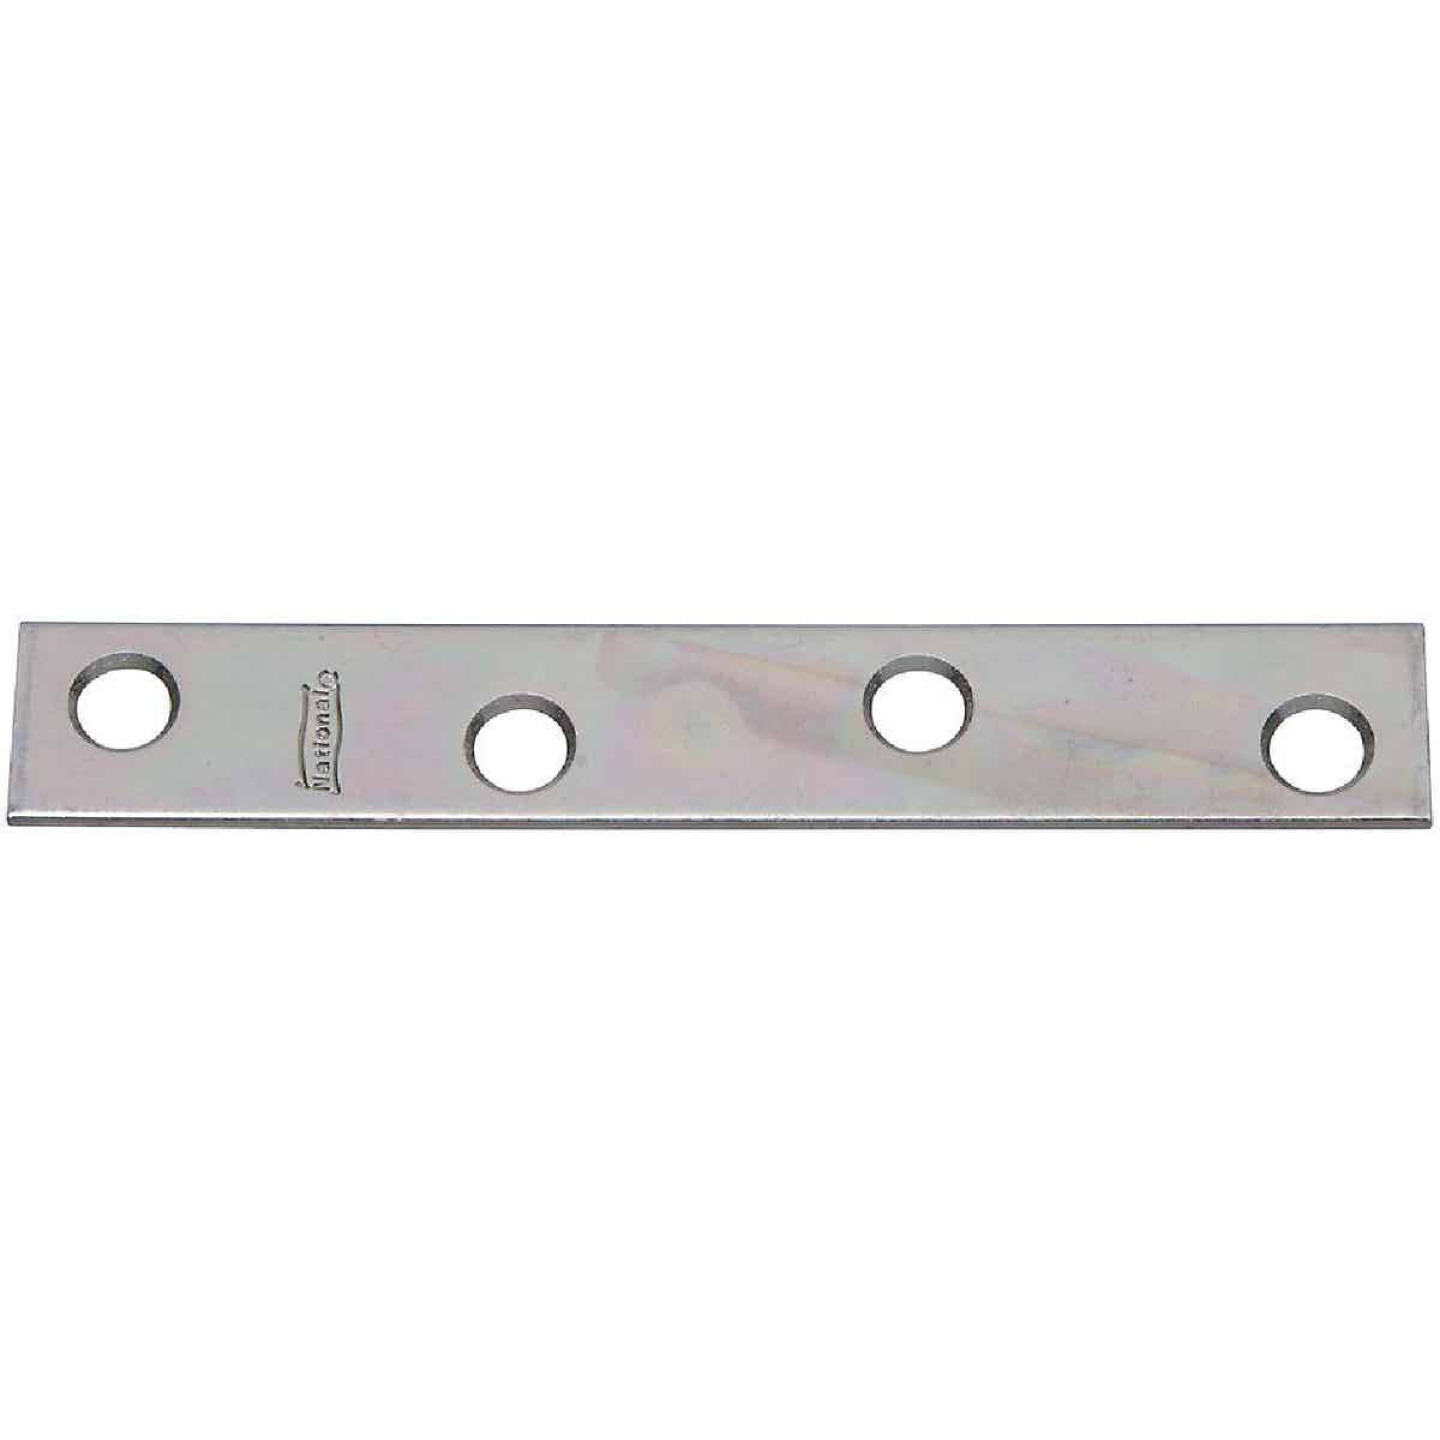 National Catalog 118 4 In. x 5/8 In. Zinc Steel Mending Brace (4-Count) Image 1